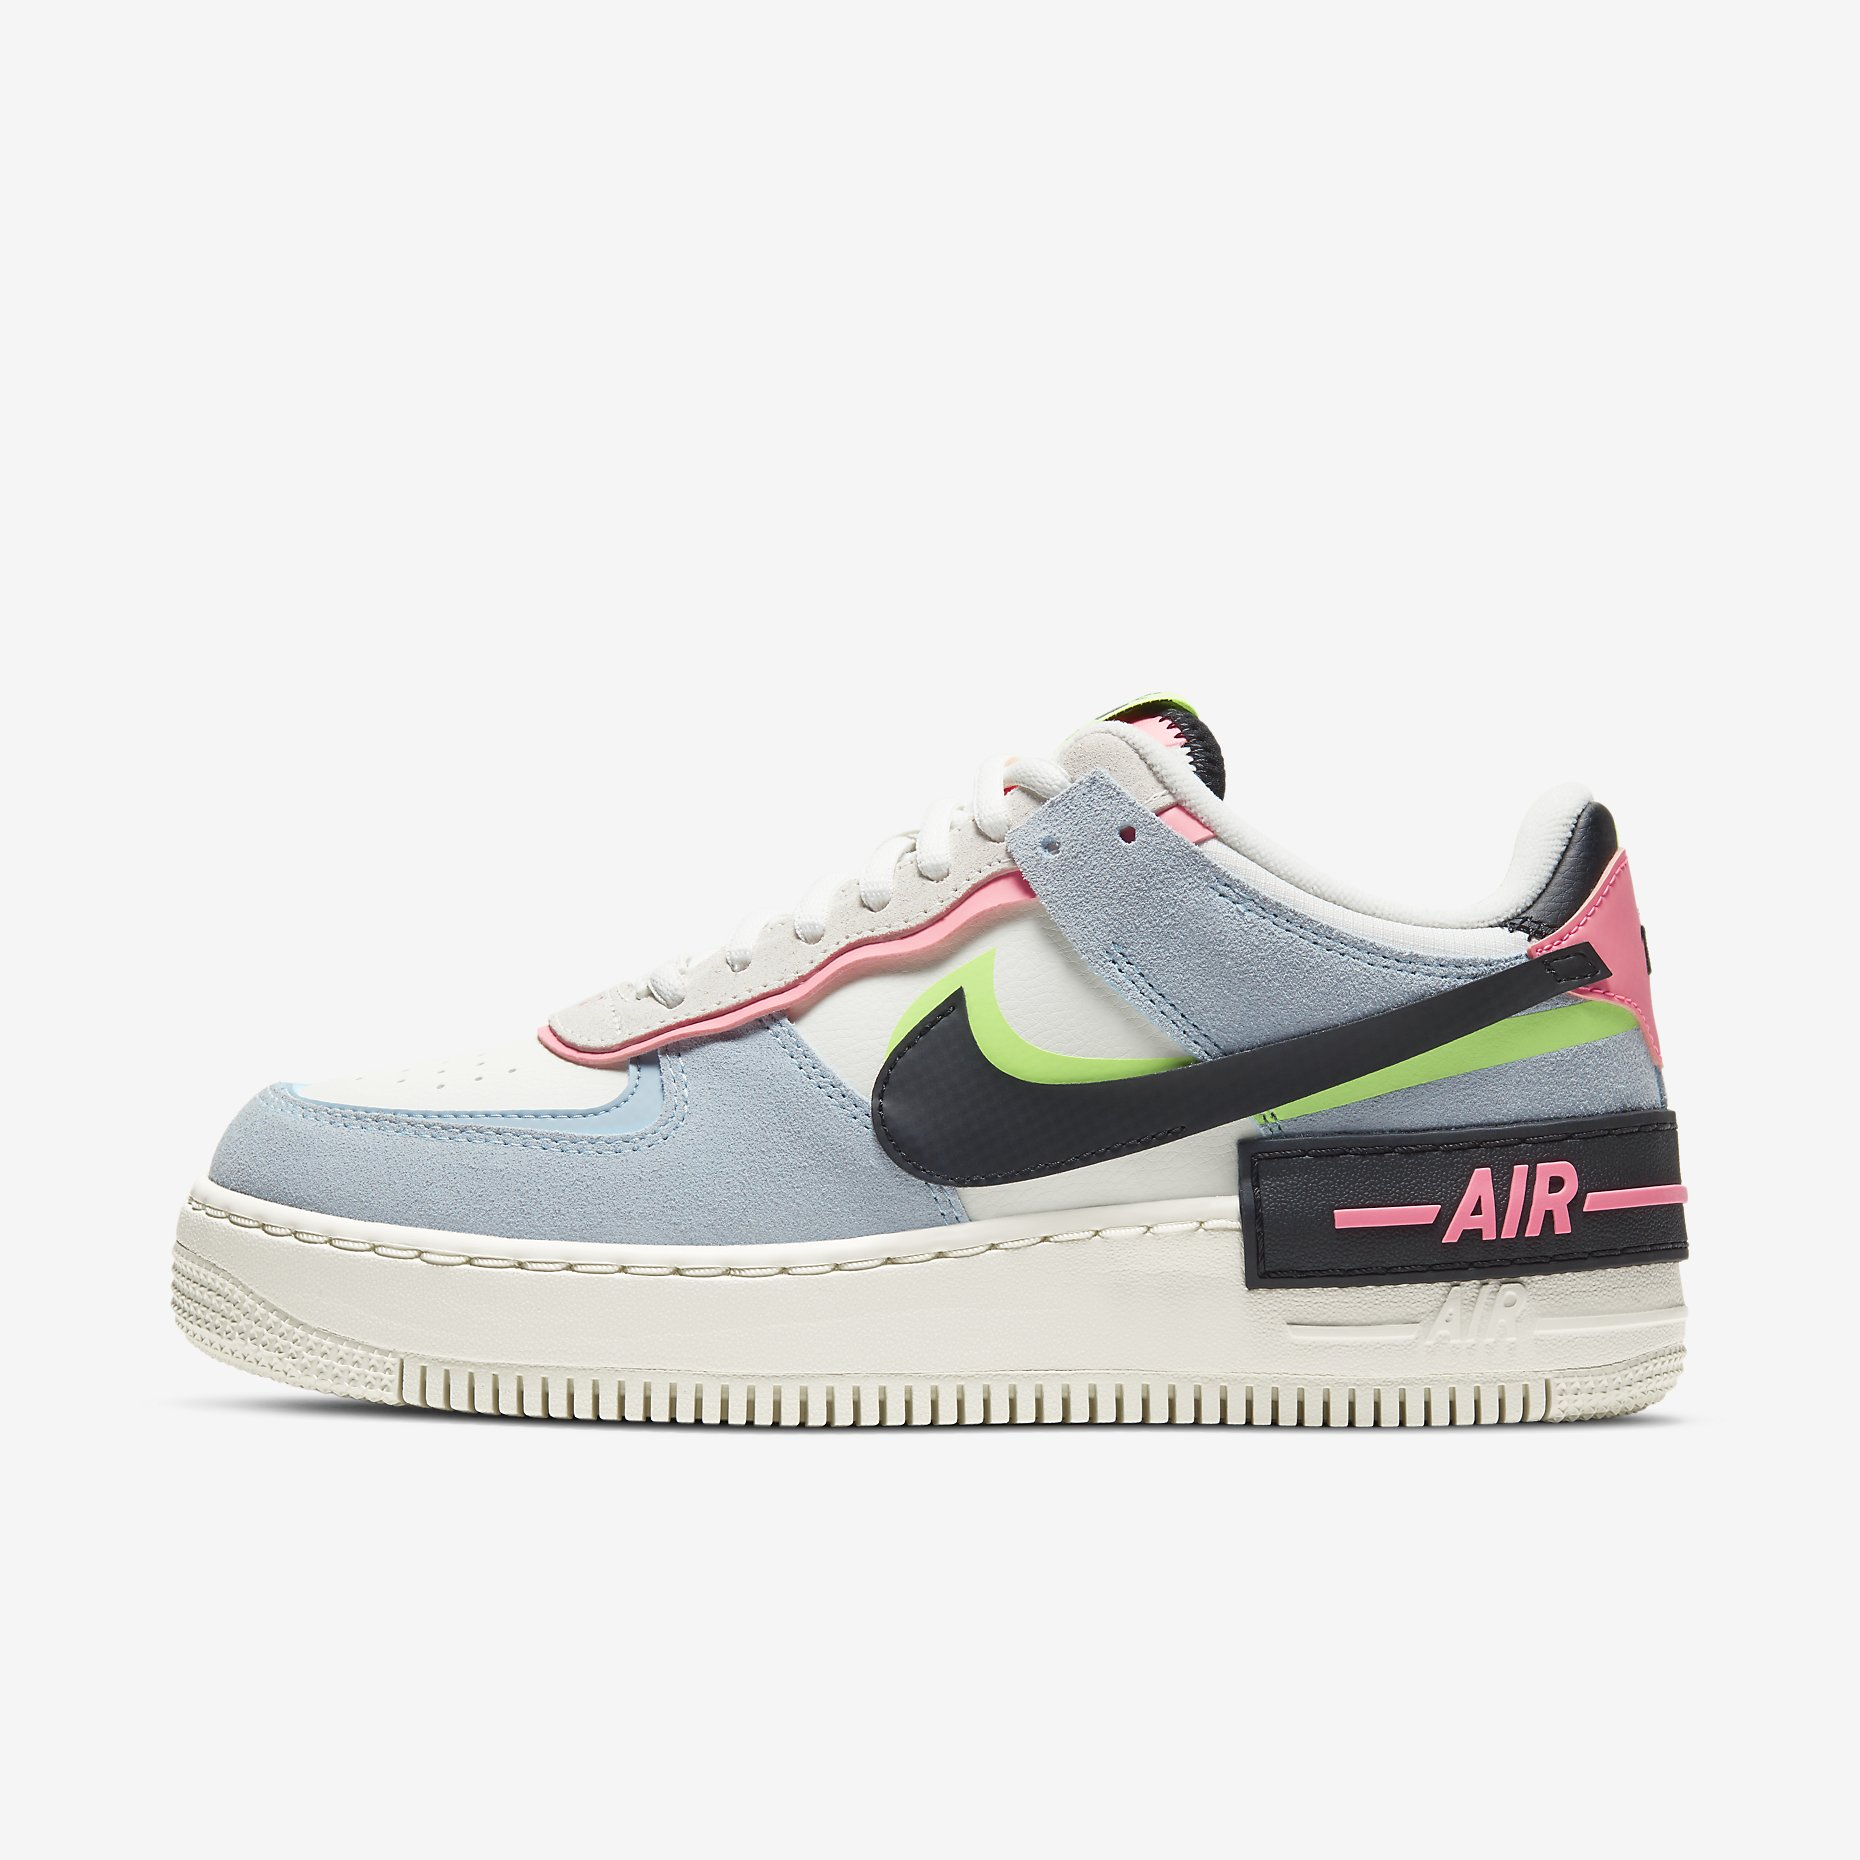 womens-nike-air-force-1-shadow-sailsunset-pulselight-armoury-blue-cu8591-1015